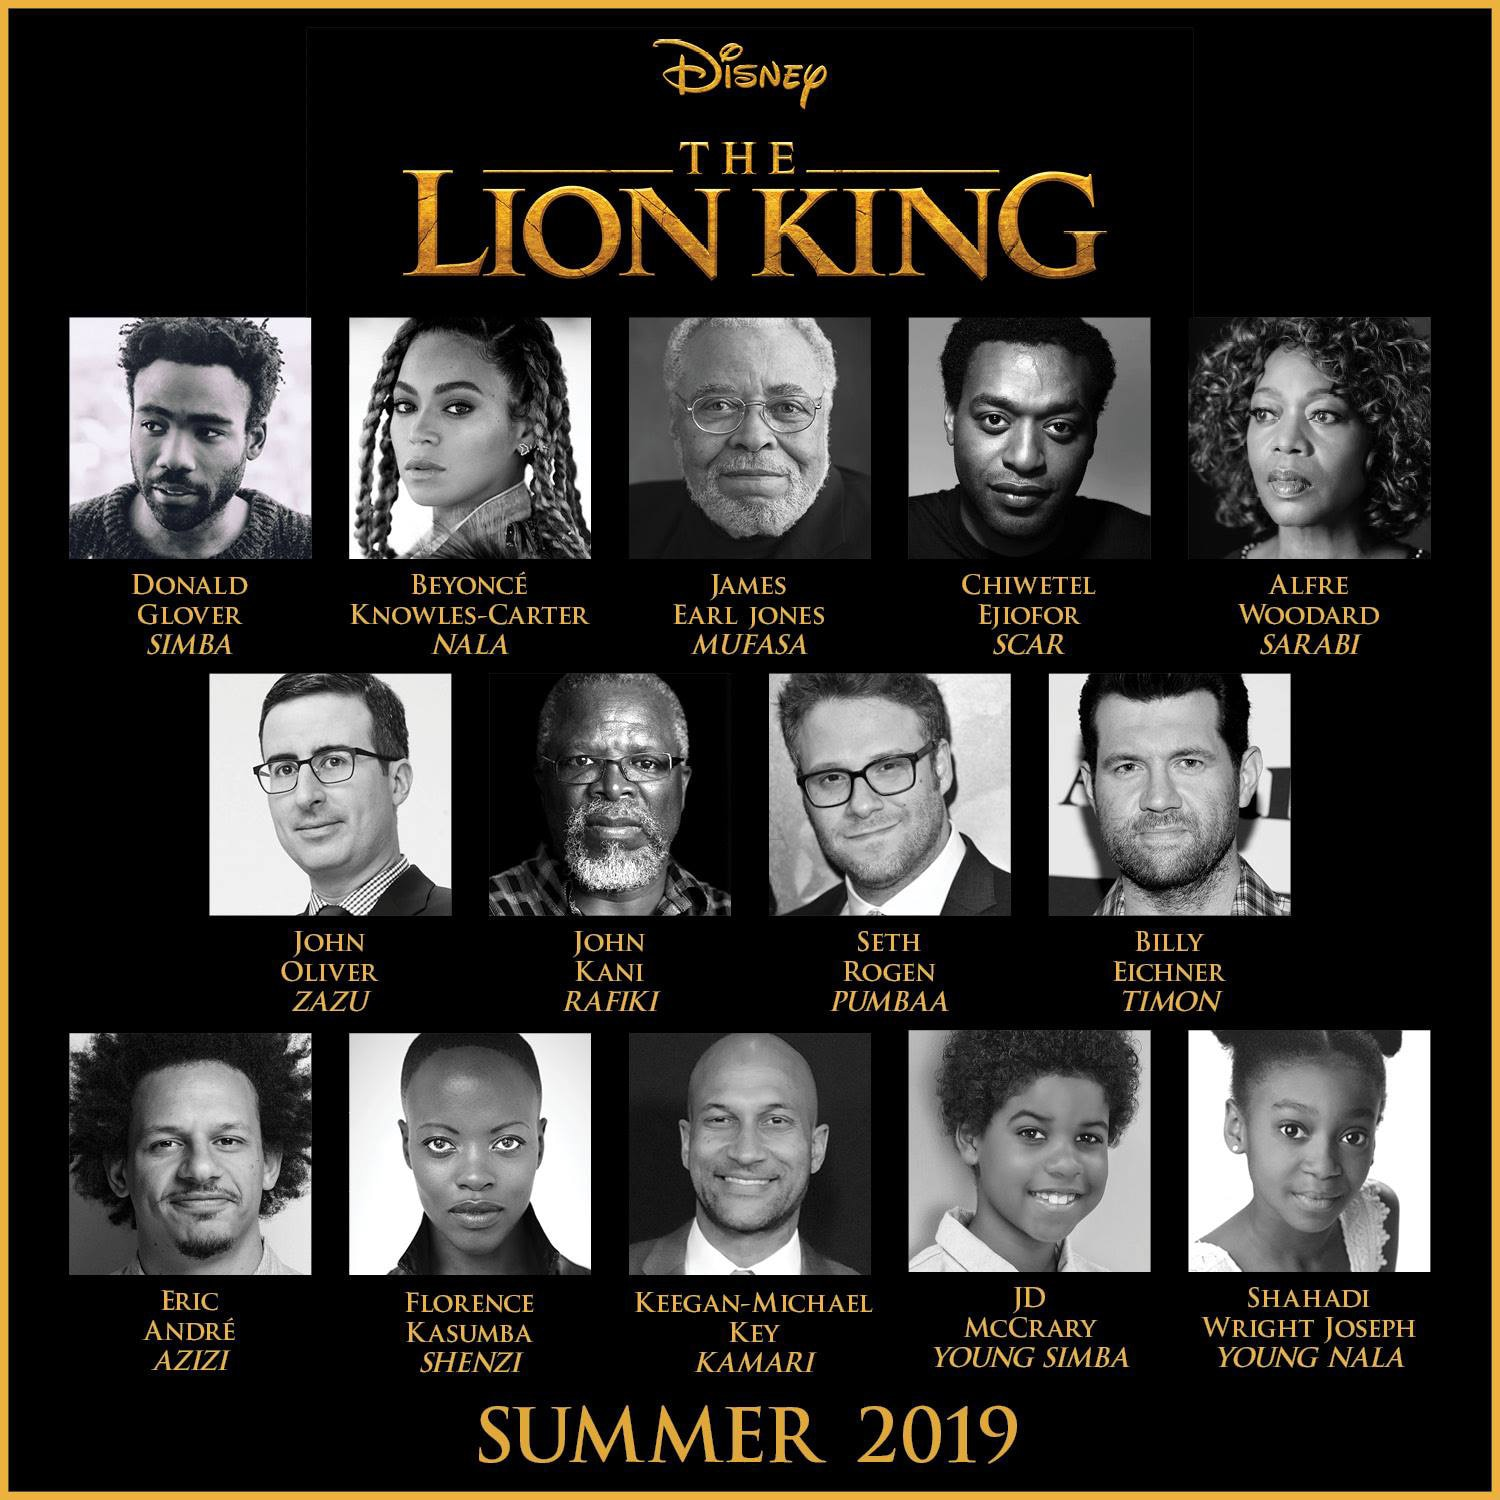 names of the characters in the lion king movie